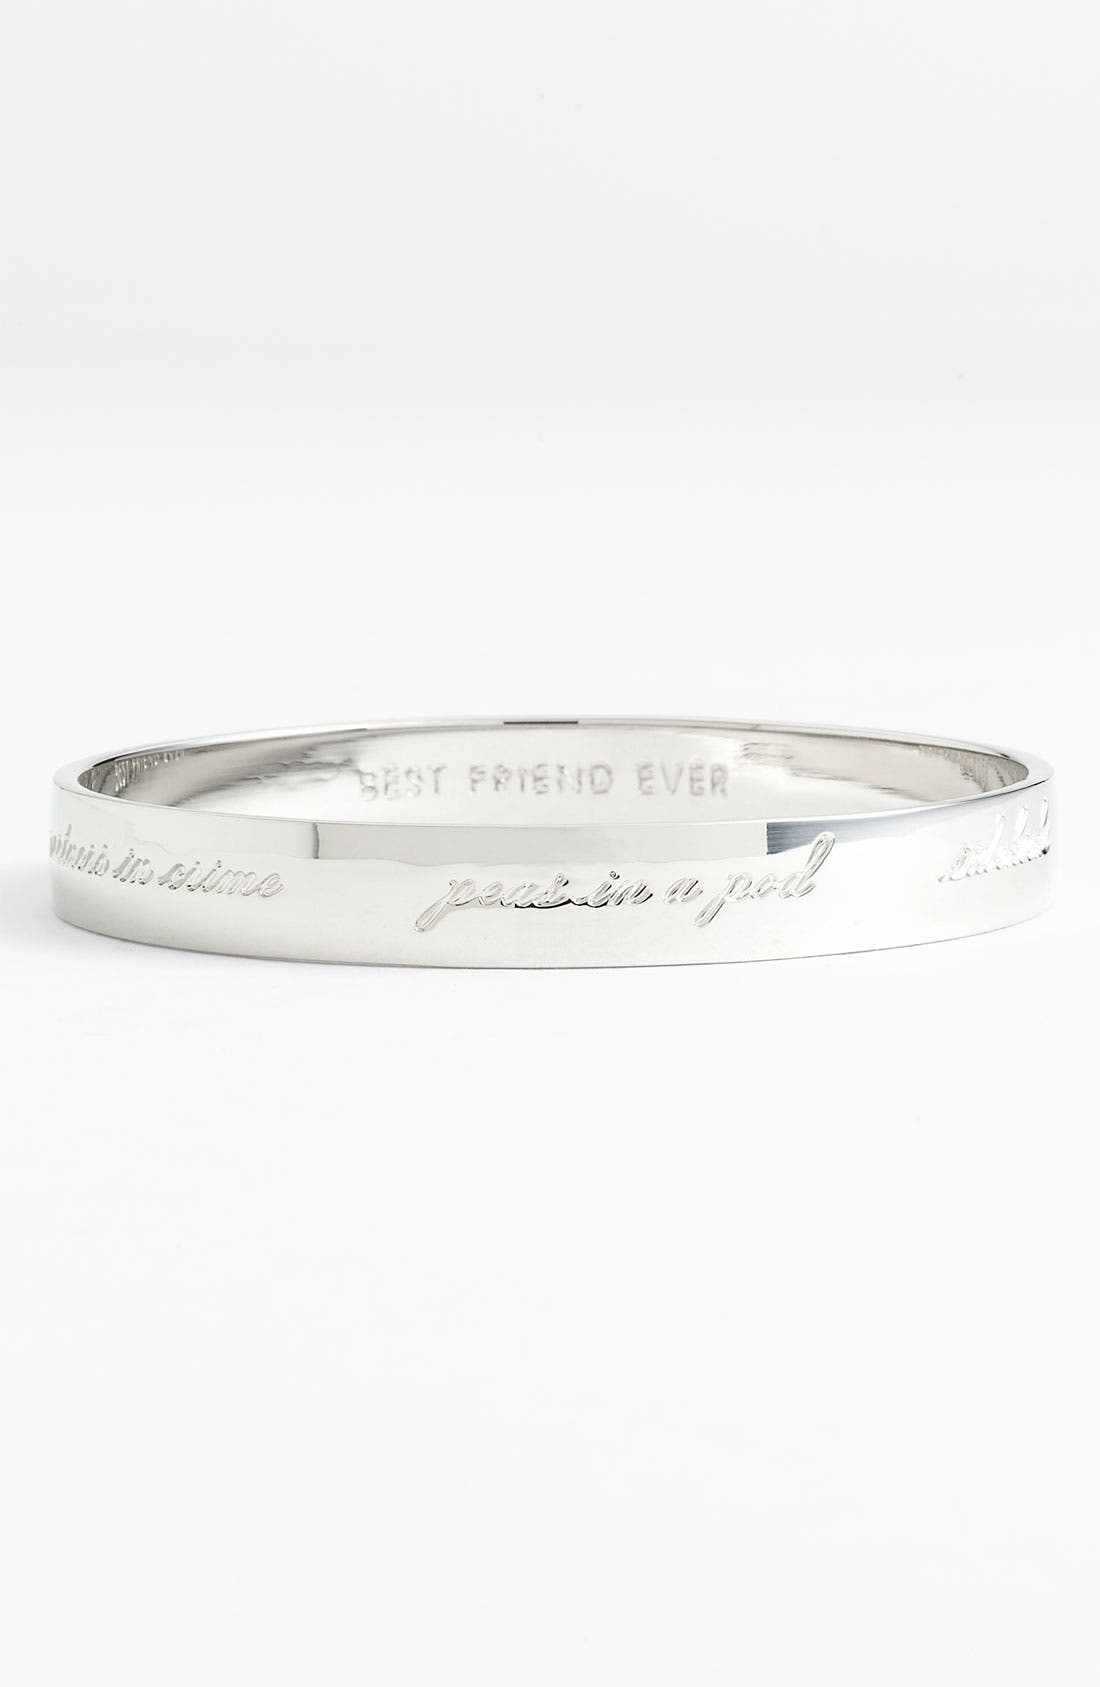 Main Image - kate spade new york 'idiom - bridesmaid' bangle